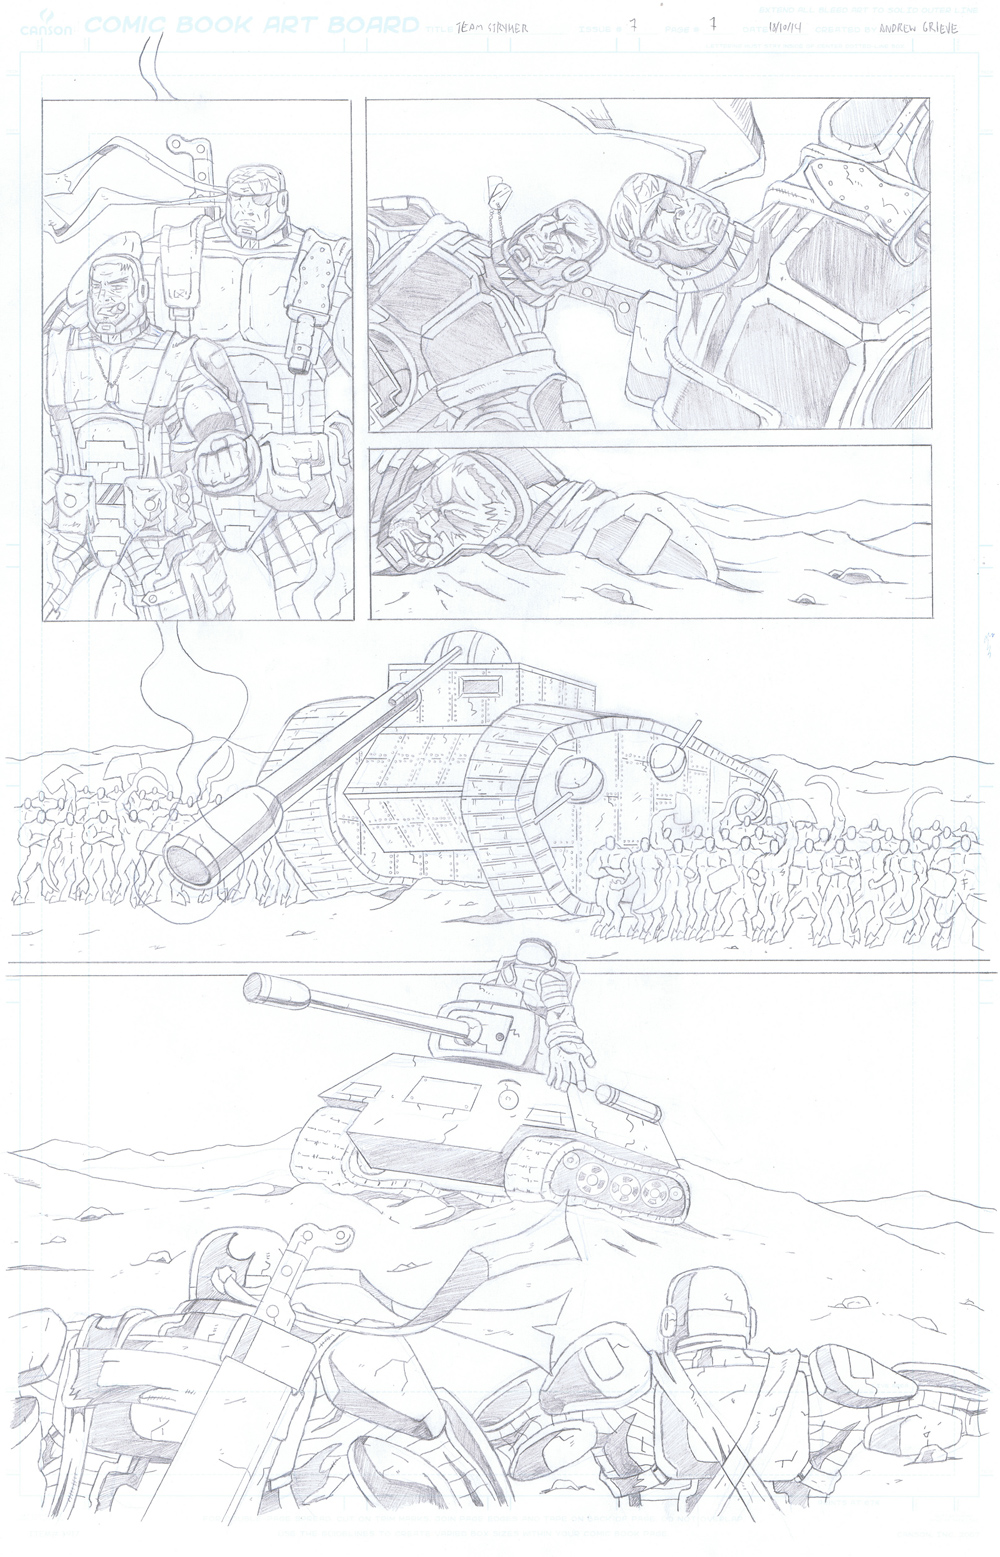 MISSION 007: PAGE 07 PENCIL